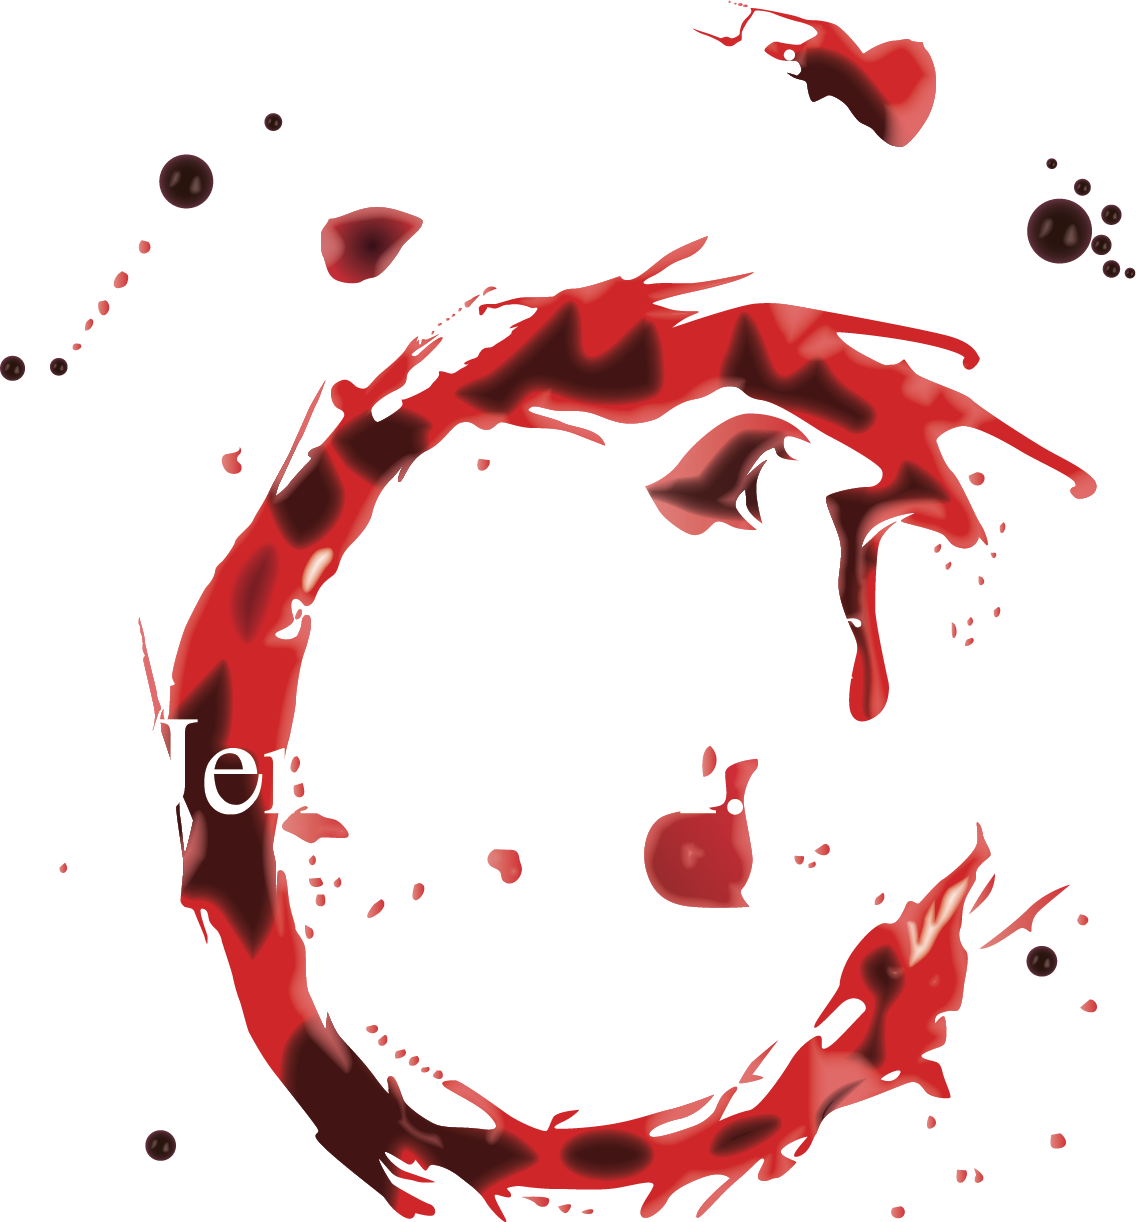 //www.jacurrylaw.com/wp-content/uploads/2020/02/JCurryLaw-Logo-Blood.png